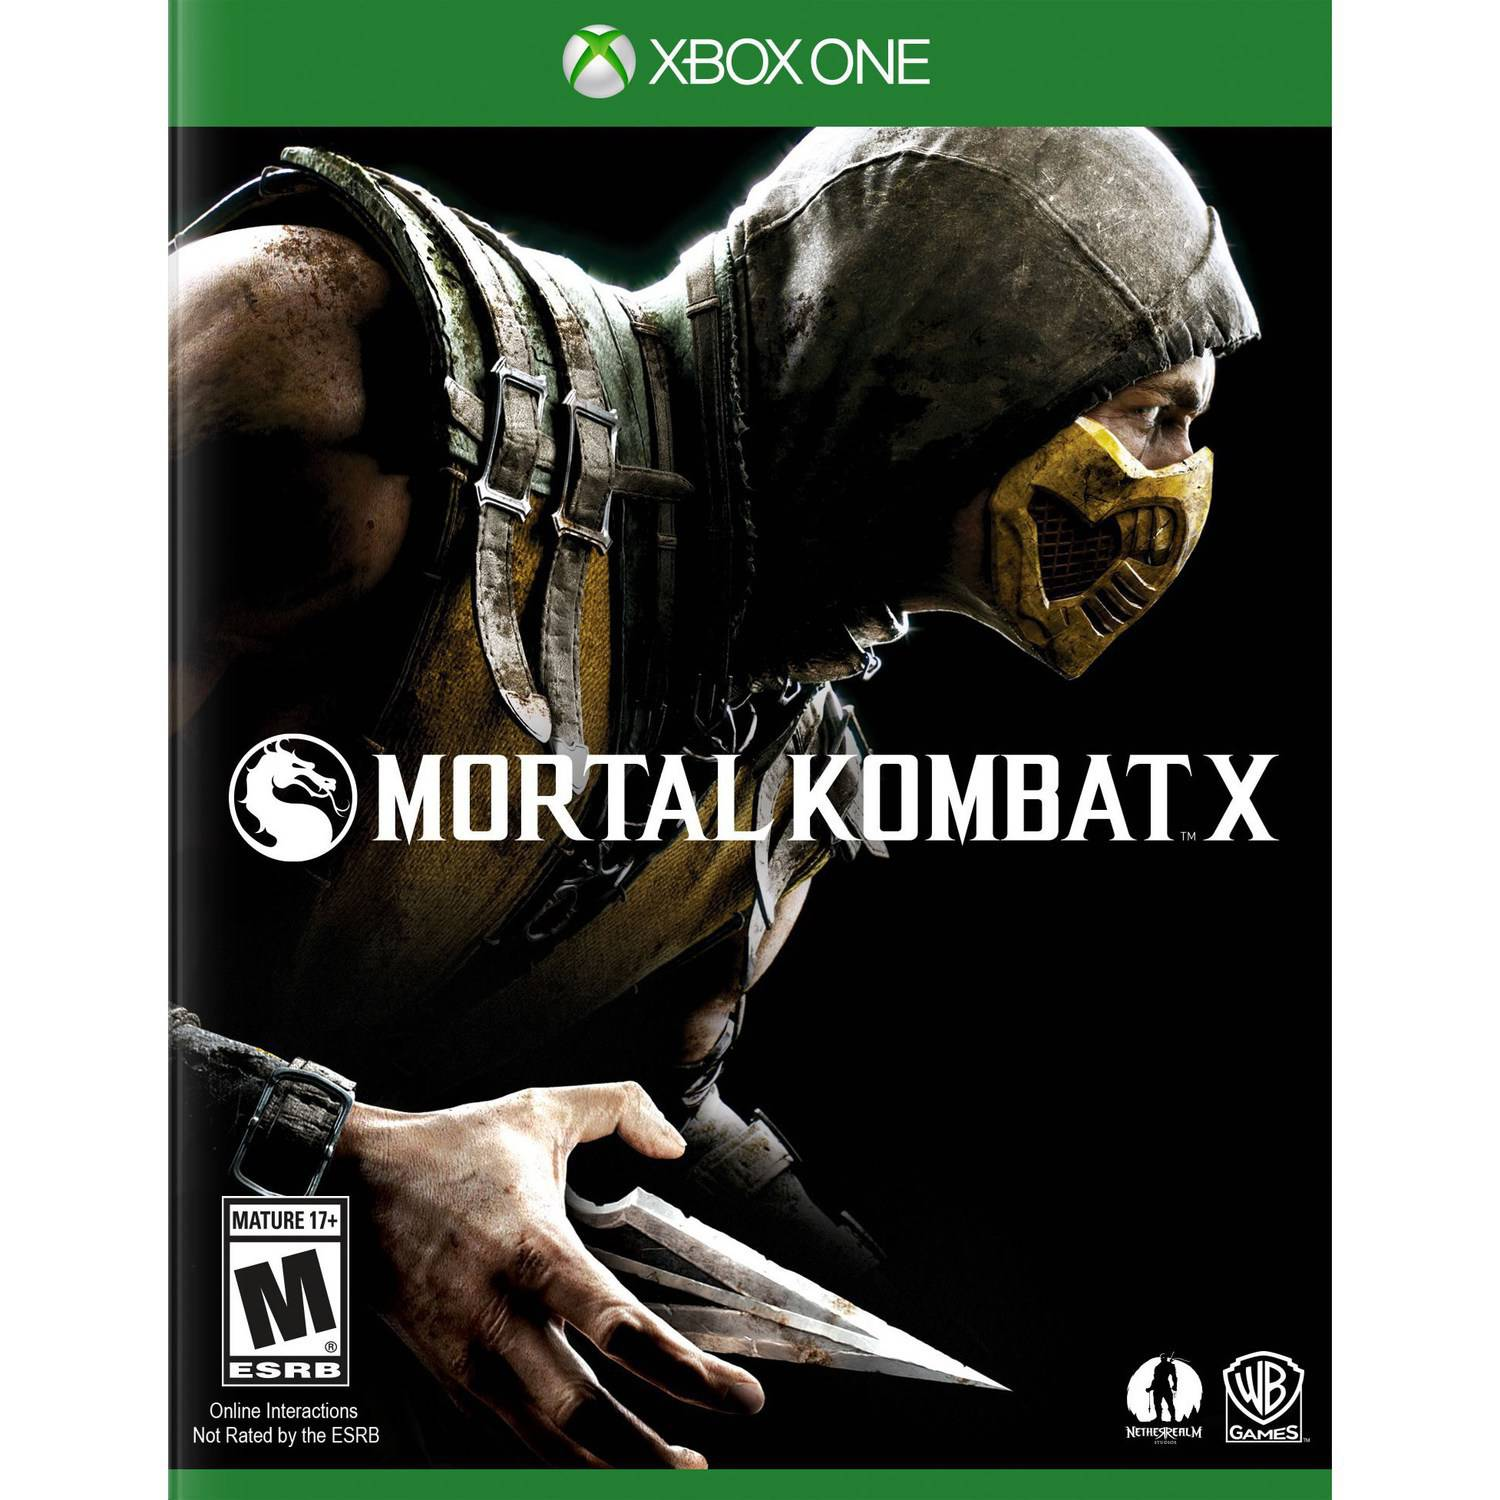 Mortal Kombat X (Xbox One) - Pre-Owned